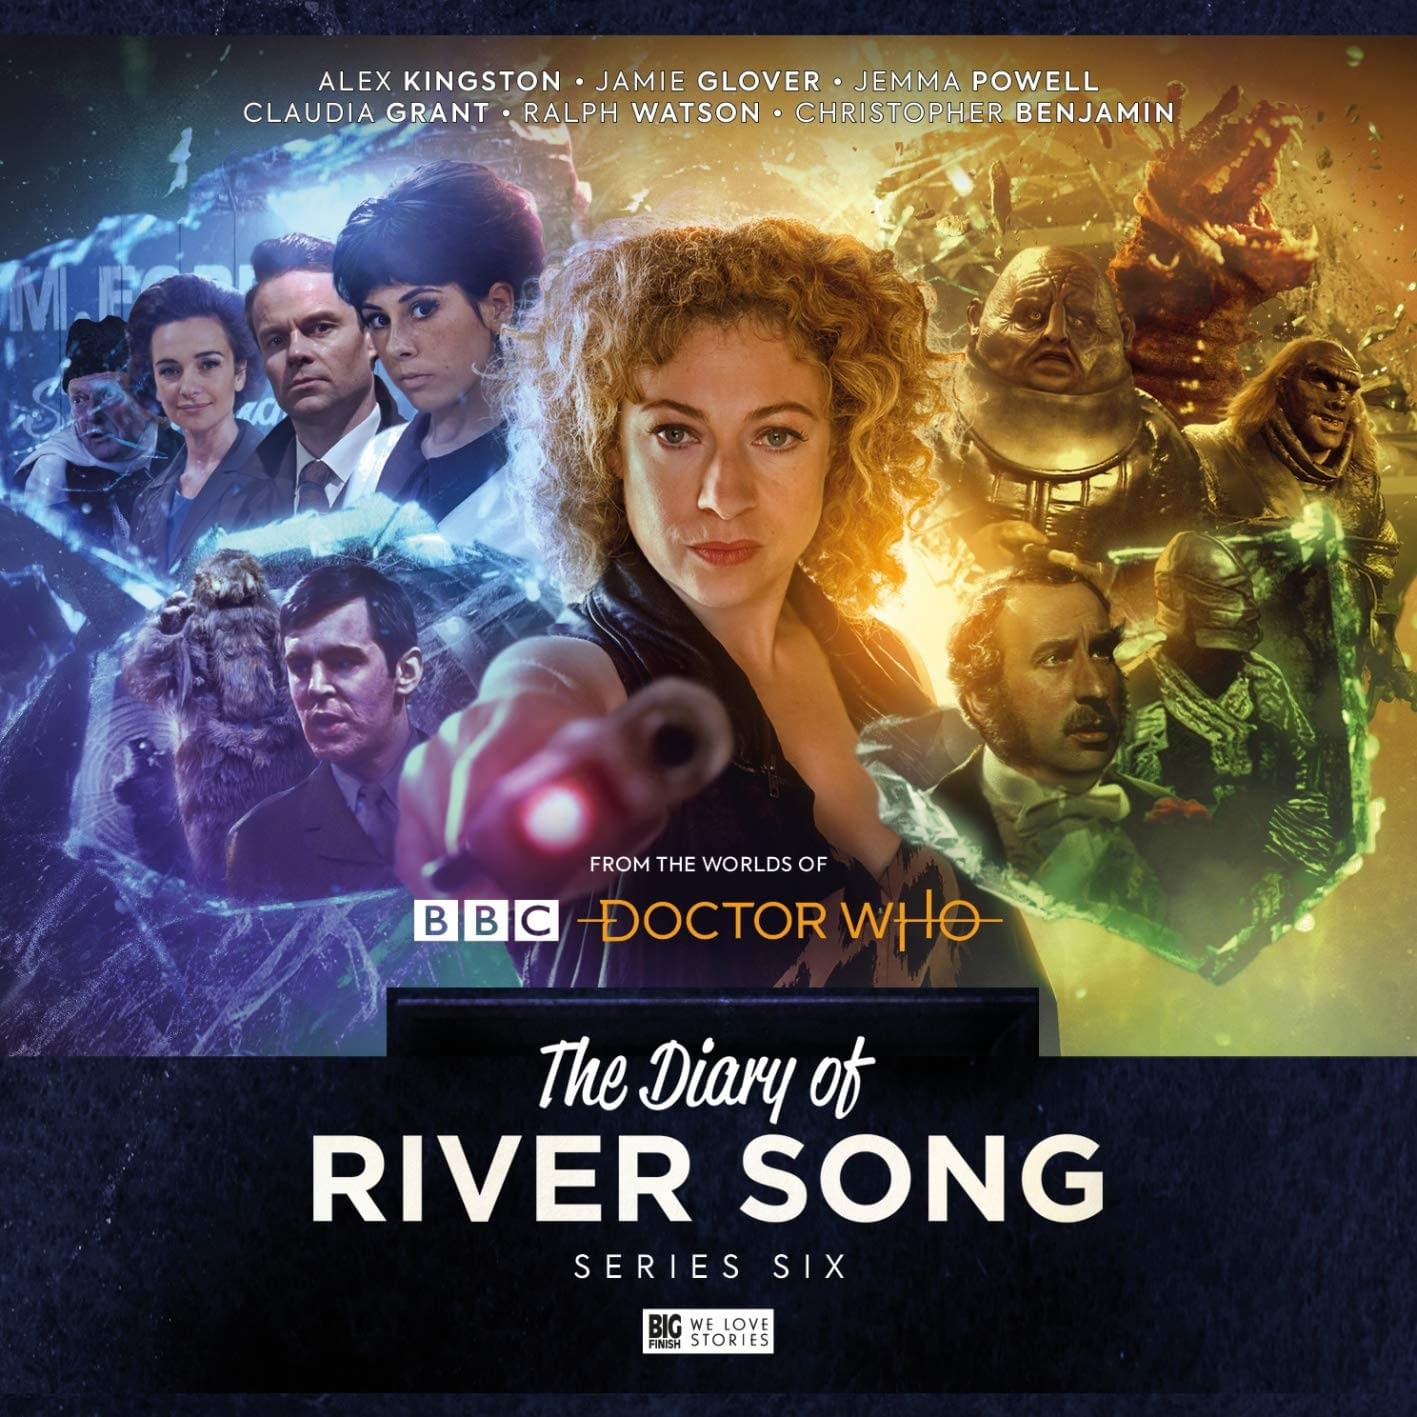 """""""The Diary of River Song: Series Six"""": Fan Service at Its Purest [SPOILER REVIEW]"""